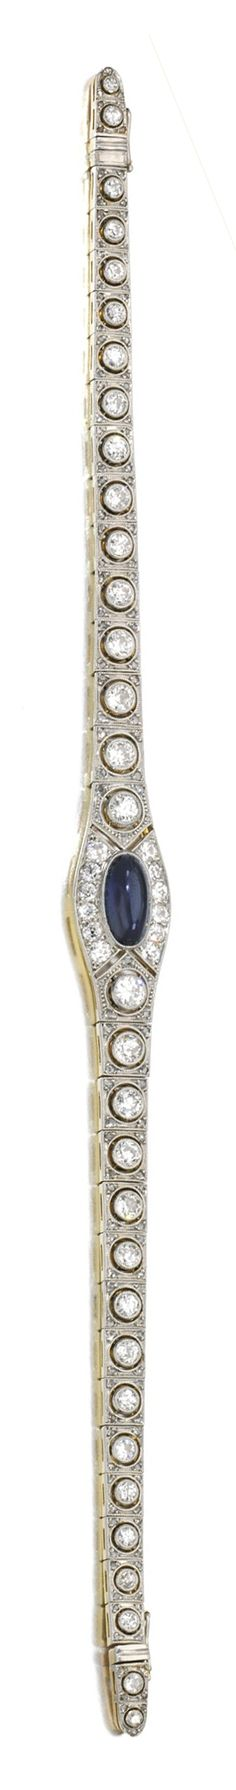 SAPPHIRE AND DIAMOND BRACELET, 1910S Set to the centre with a cabochon sapphire, to a series of links pierced and millegrain-set with circular-cut and rose diamonds, length approximately 180mm, accompanied by additional fittings allowing to be worn as a bandeau, length approximately 290mm.